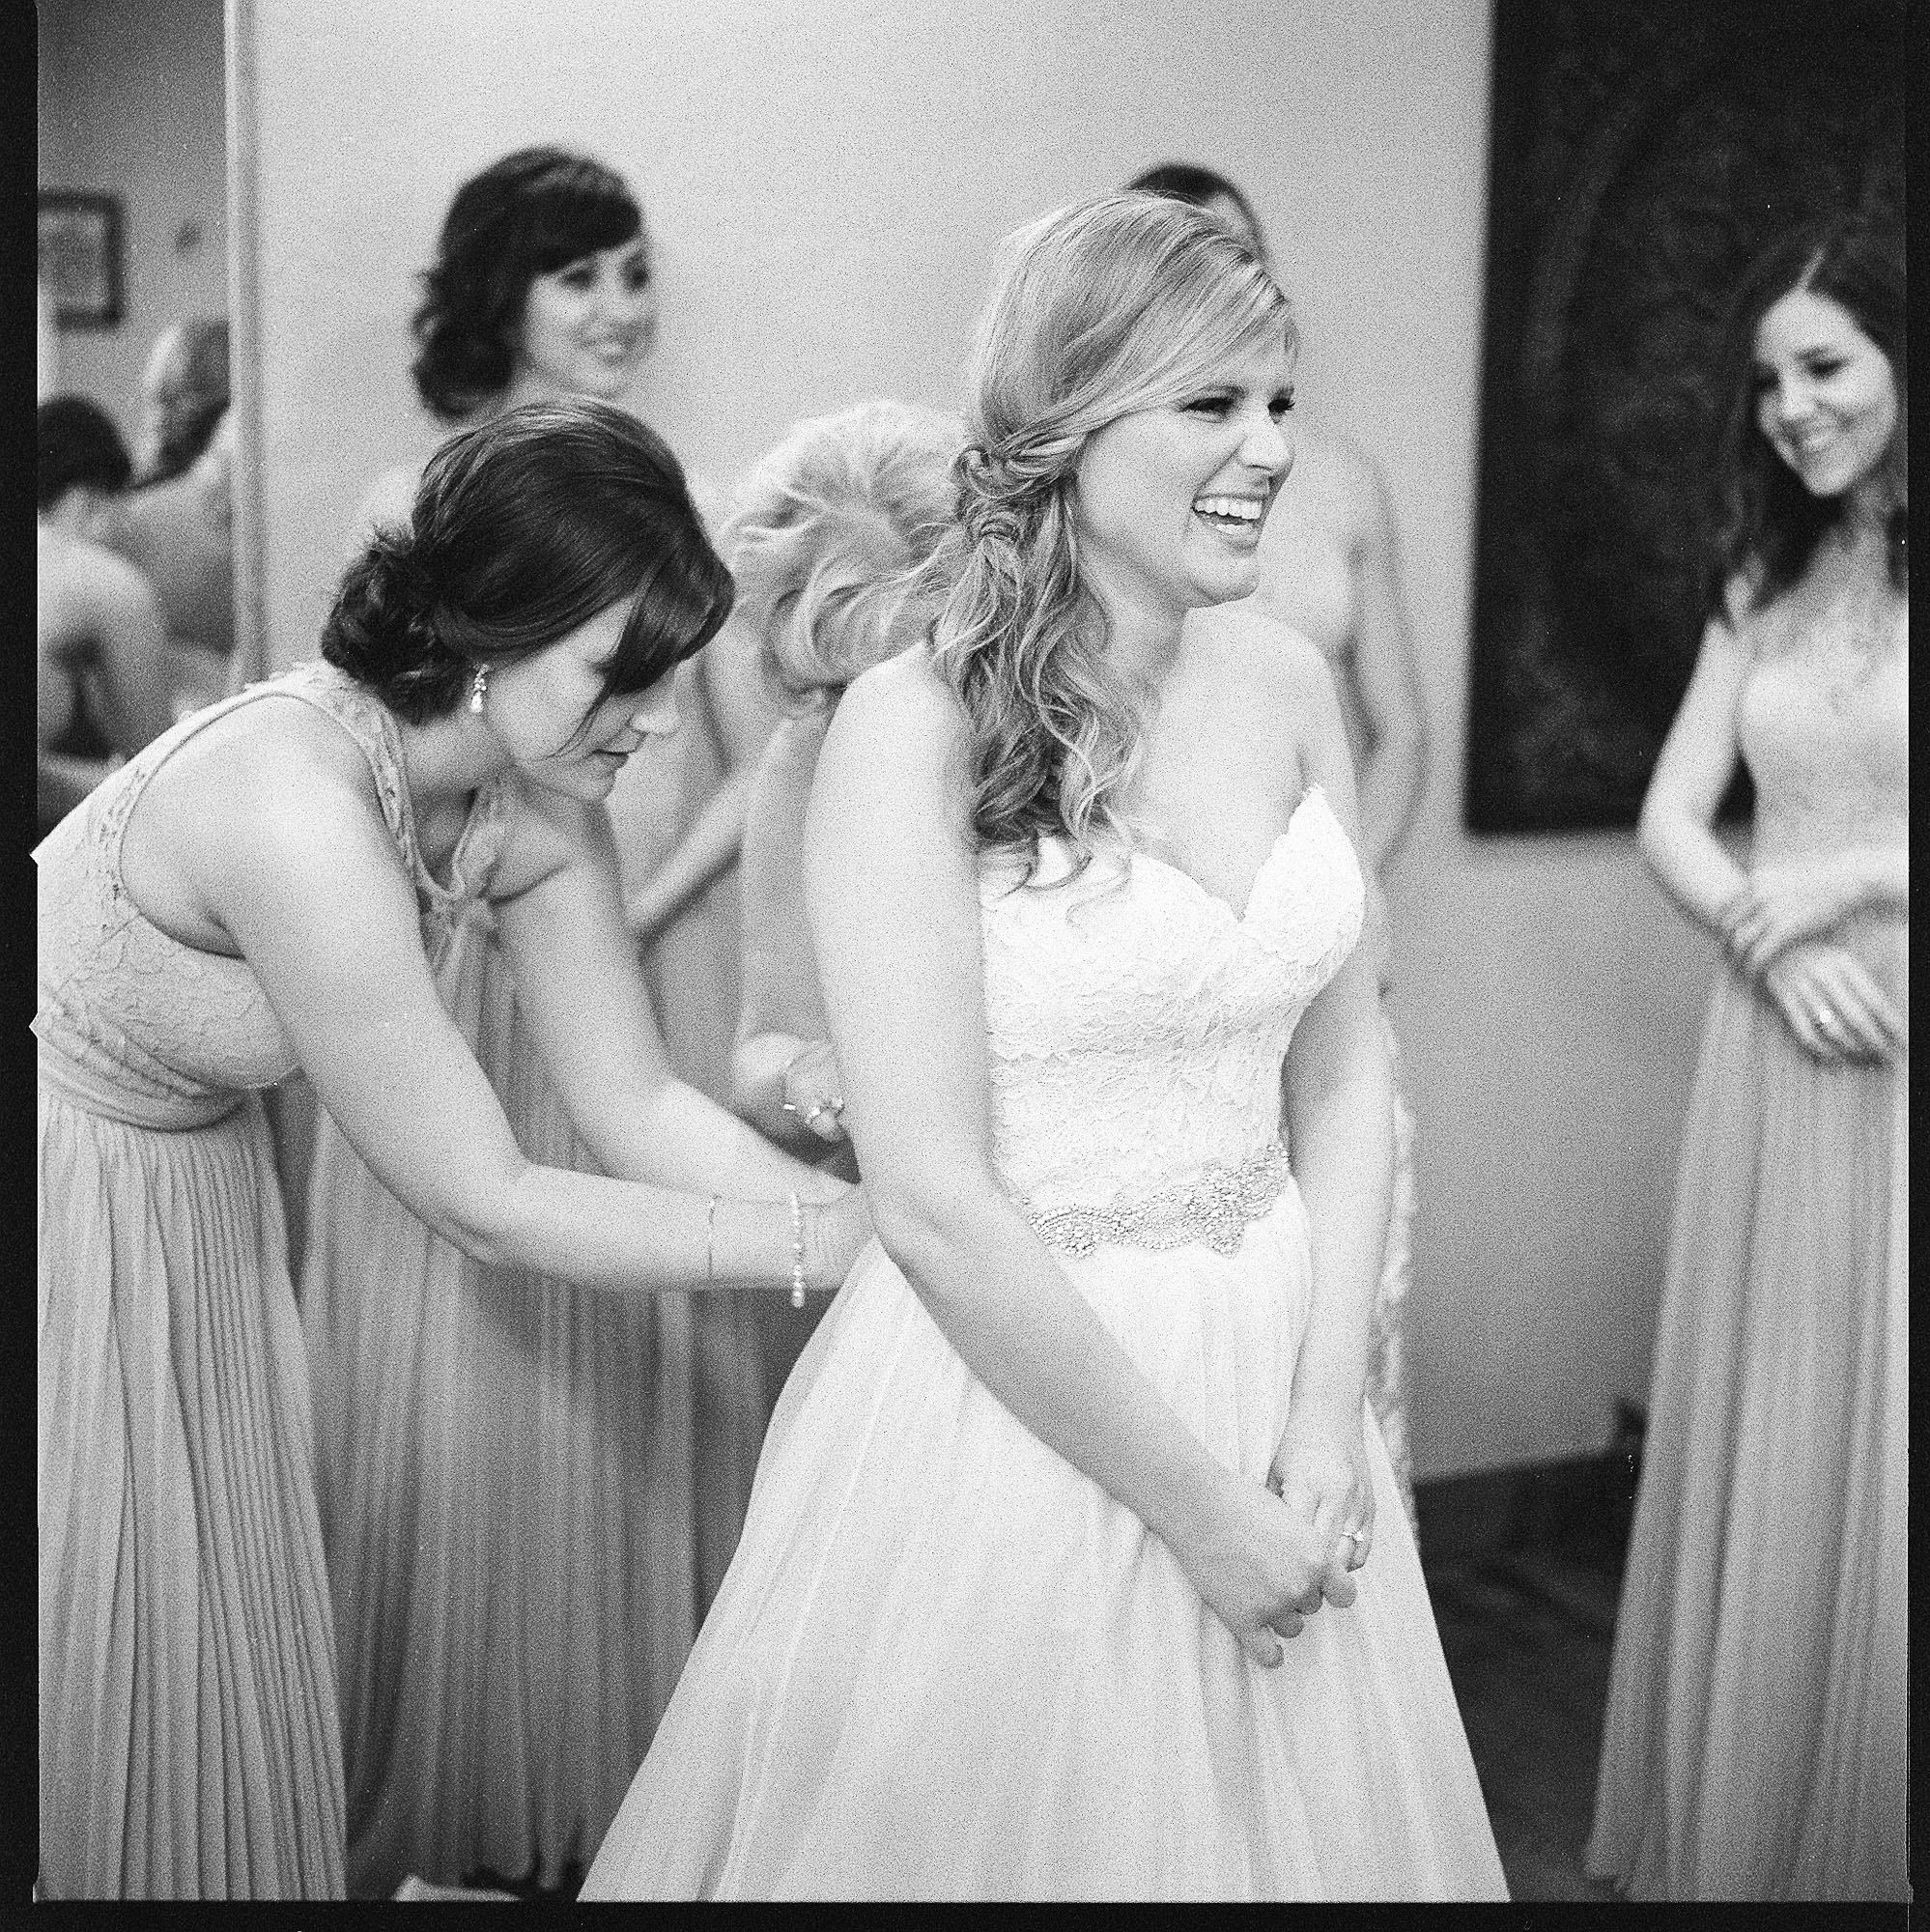 Chisolm_Springs_Wedding_OKC_Film_photographer-3.jpg